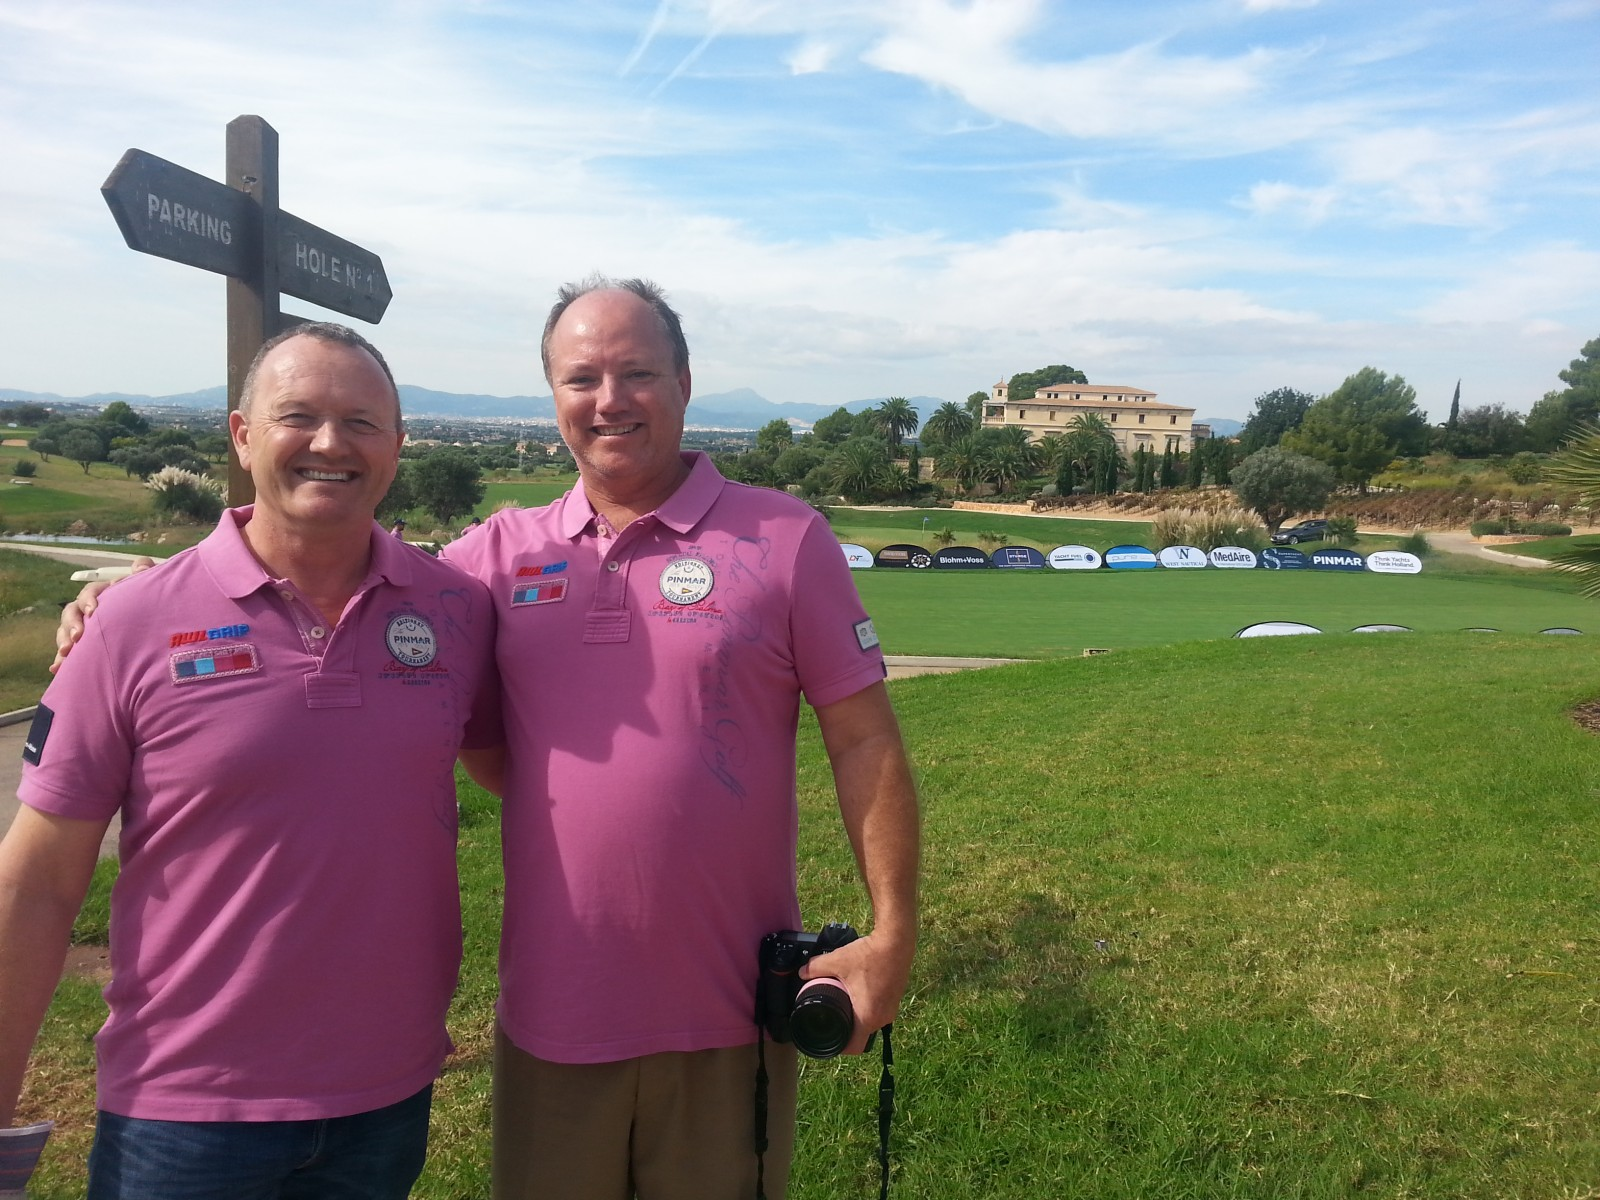 Peter Brown, managing director of Pinmar USA, and David Reed, Triton publisher, at the tournament began Oct. 16.